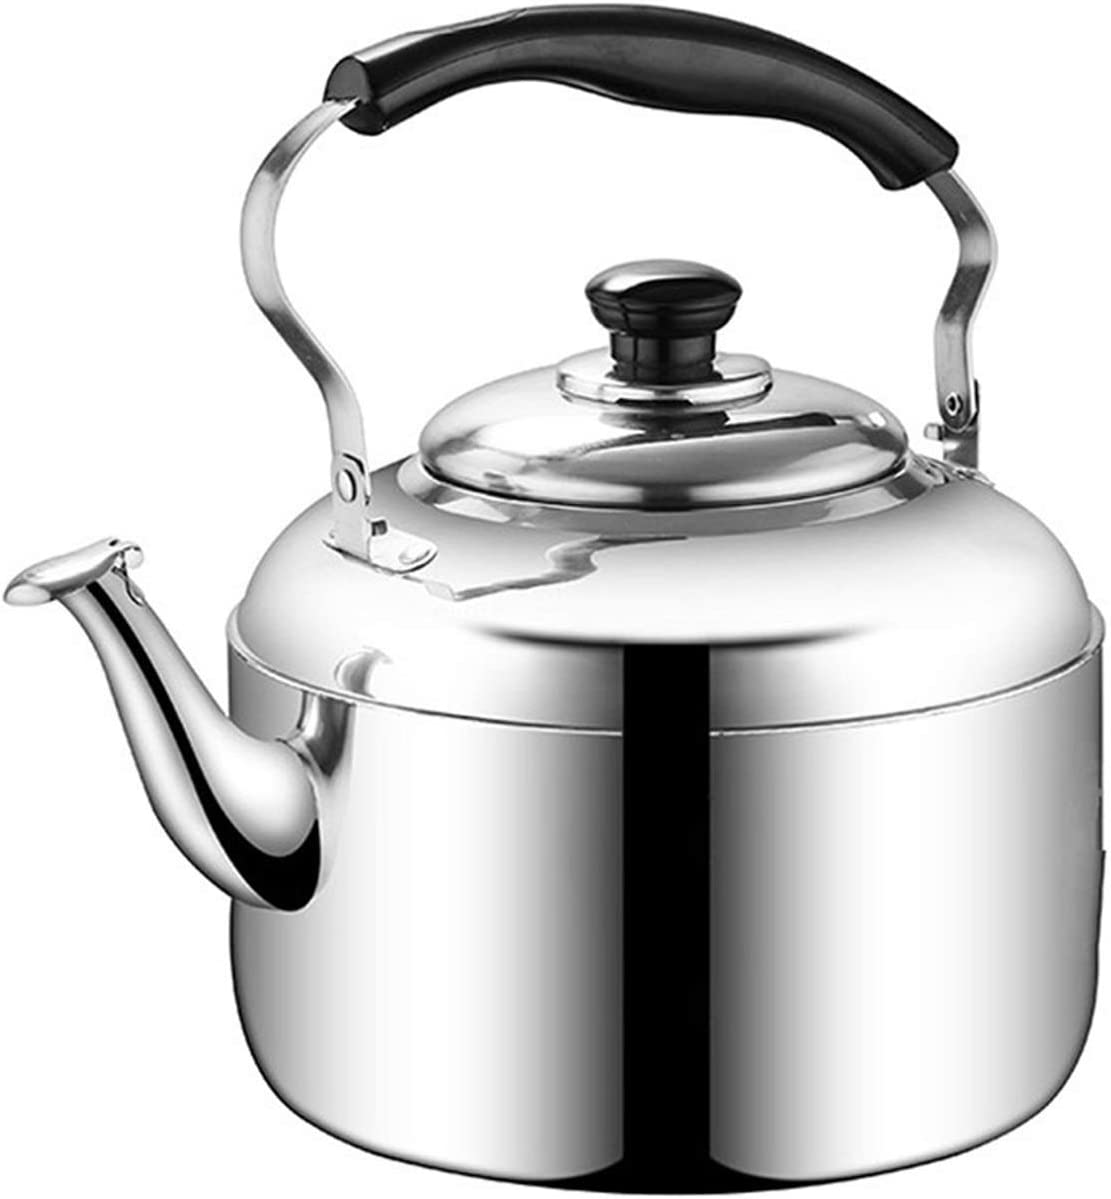 Stainless Steel Thickened Whistle Teapot Handle Limited time for free shipping House Sale special price Ergonomic